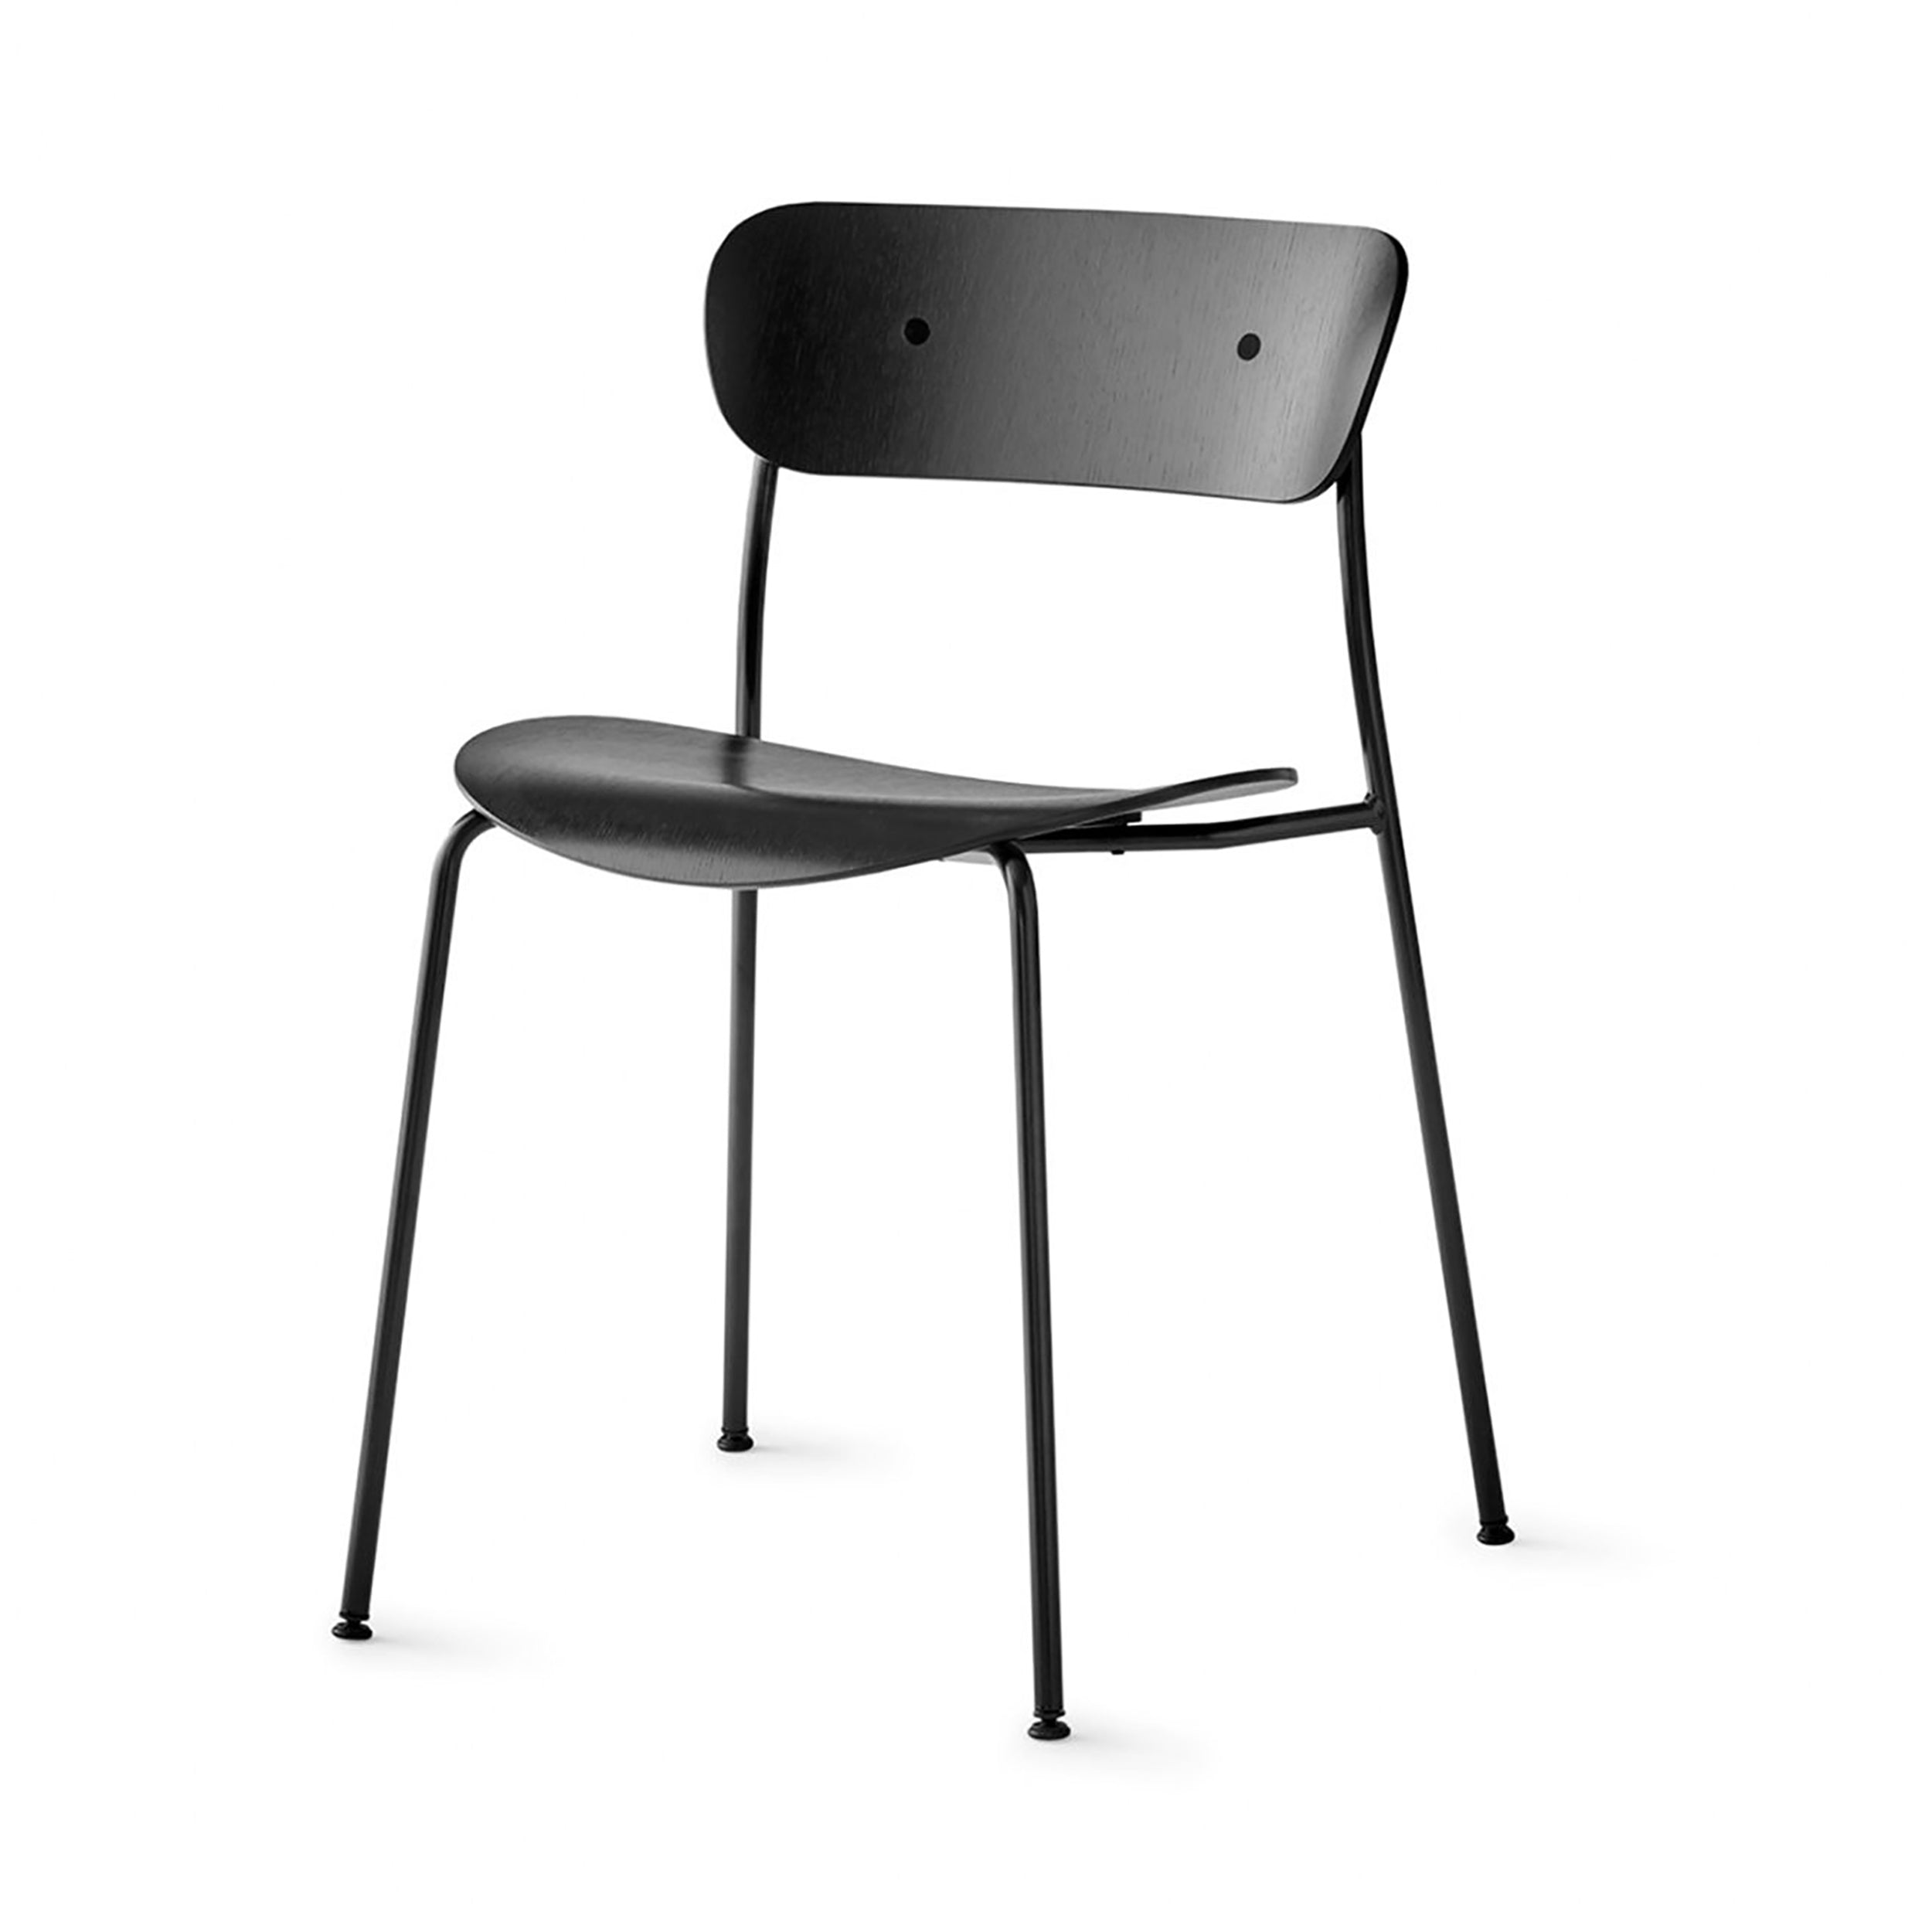 Pavilion Chair AV1: Black Lacquered Oak